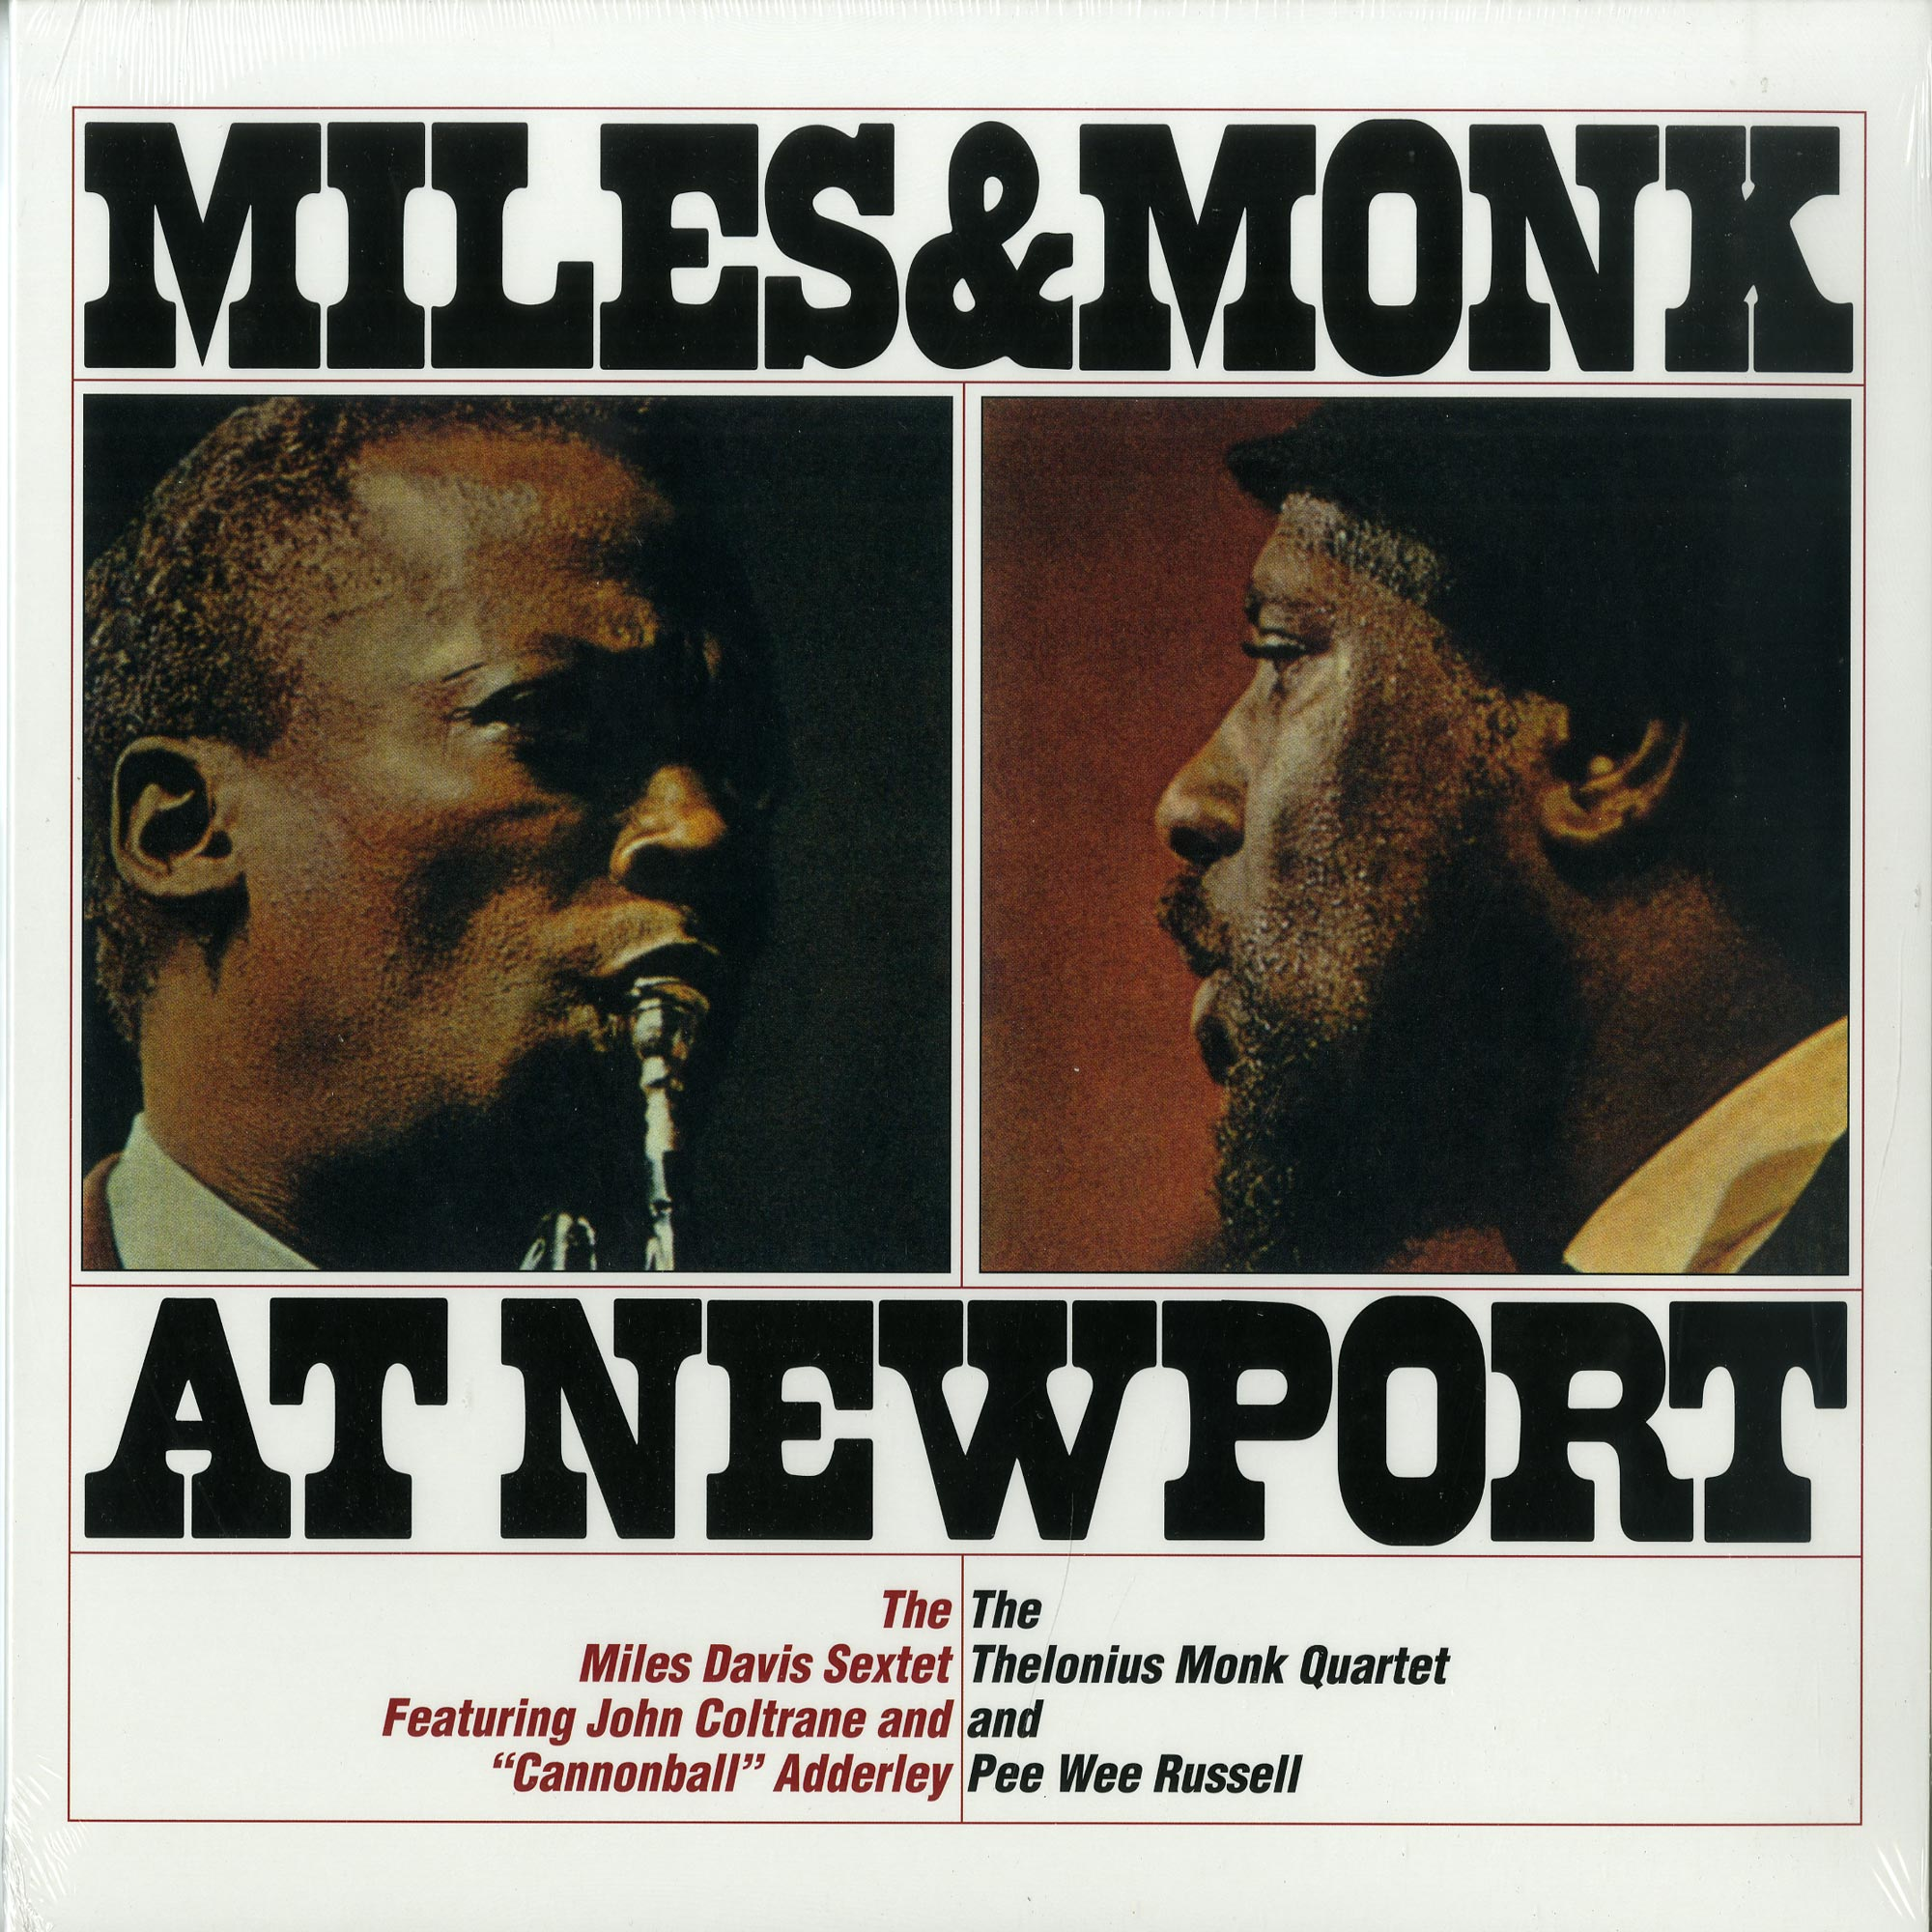 Miles Davis - Miles and Monk at Newport (Vinyl LP)